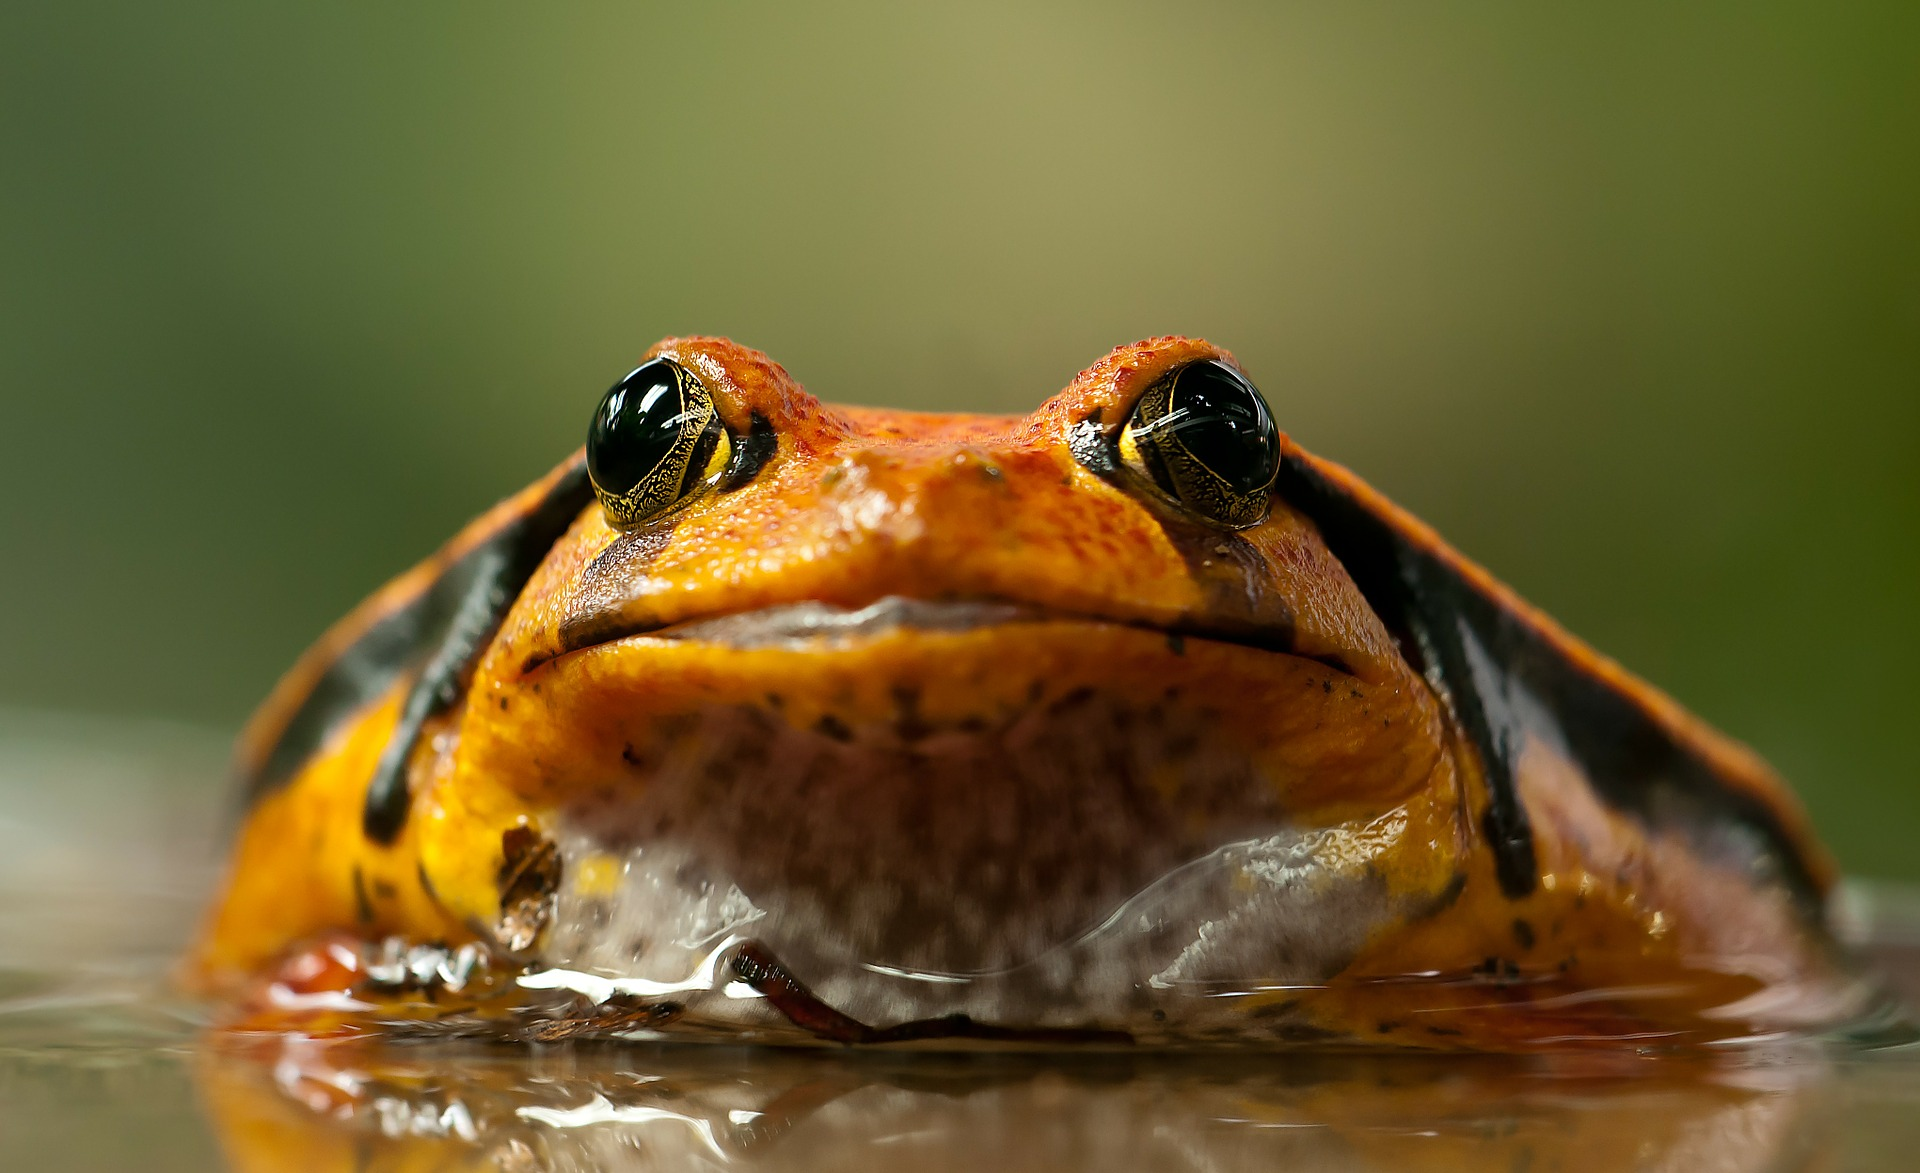 Are Amphibians Cold Blooded? • Earth.com